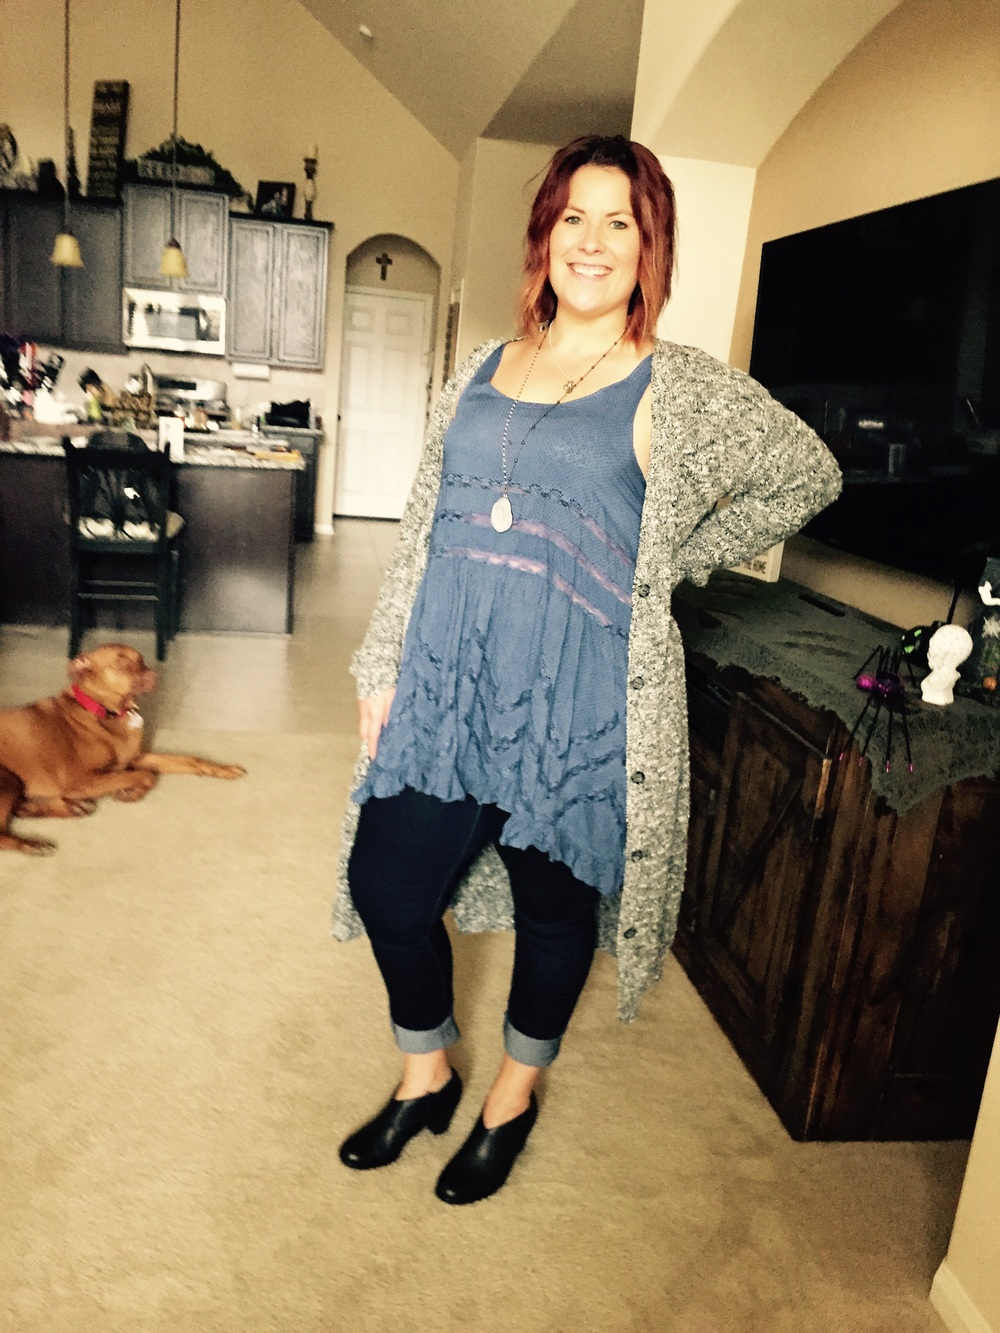 The fabulous Rebekah owning her  skinny Levi jeans ! She paired hers with the  free people tunic  you've seen on the blog many times with a long cardigan. The  tunic  is a perfect year-round piece!